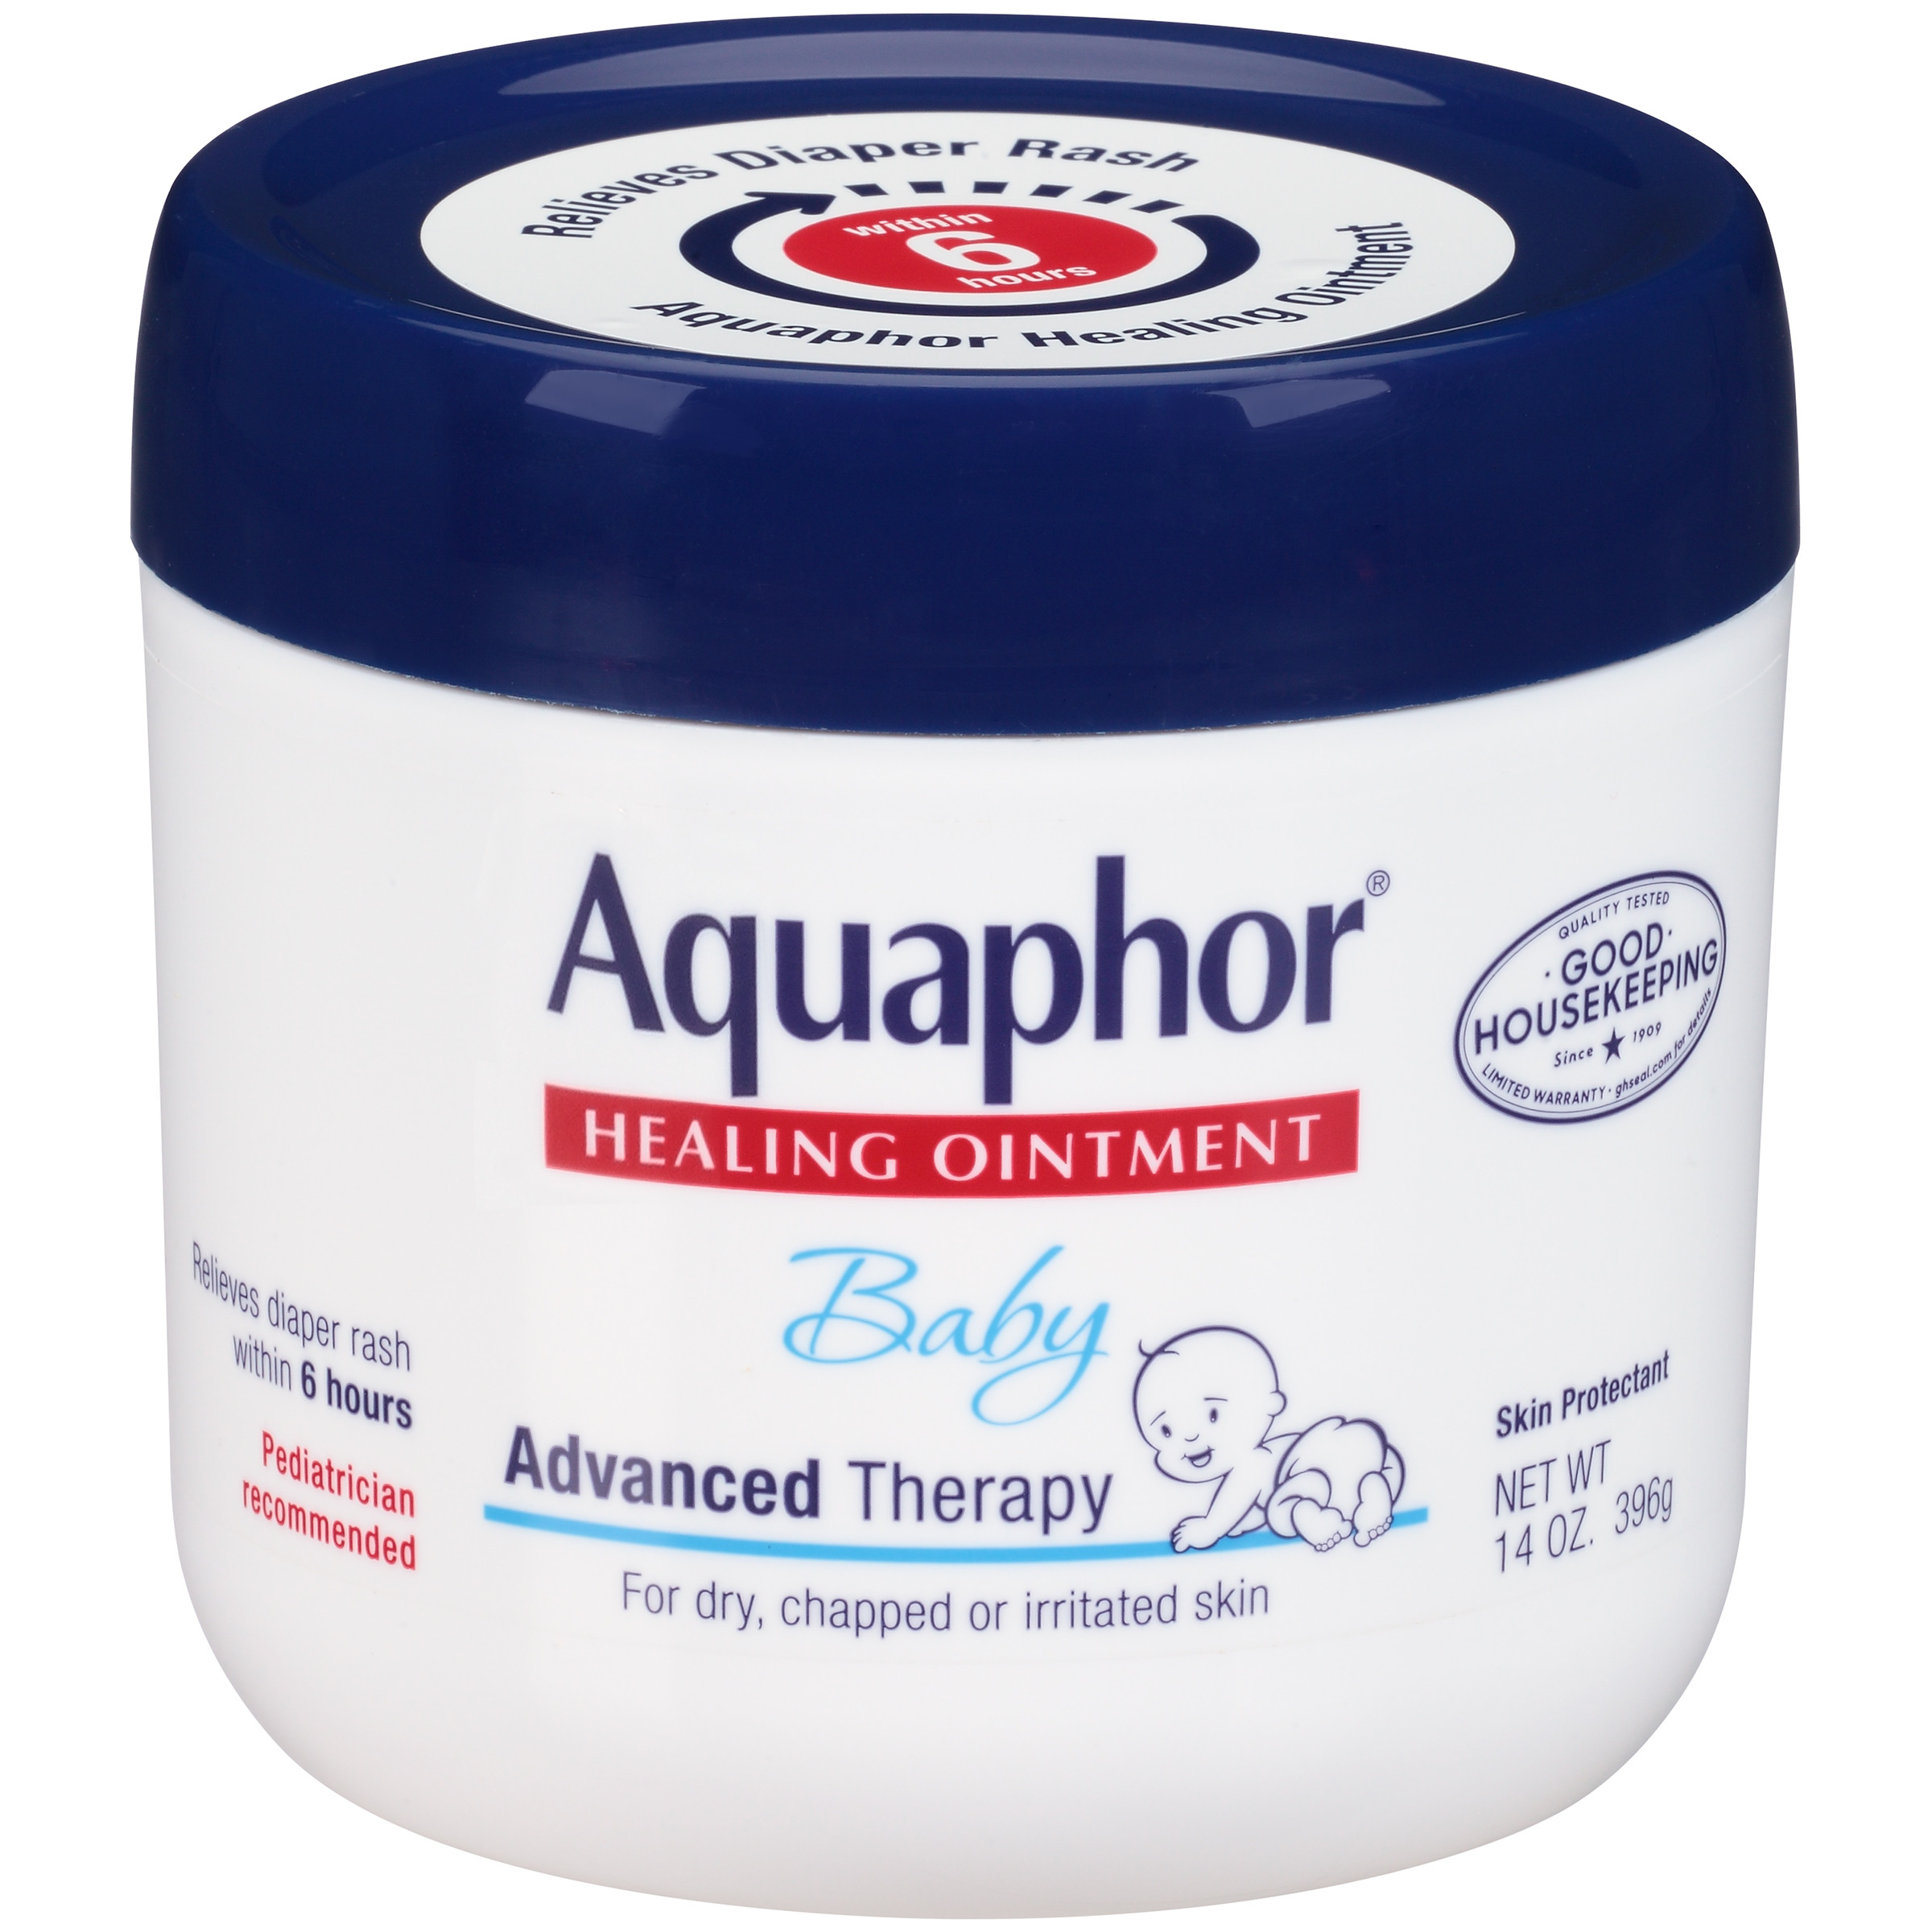 Aquaphor Baby Advanced Therapy Healing Ointment, 14 oz. Jar